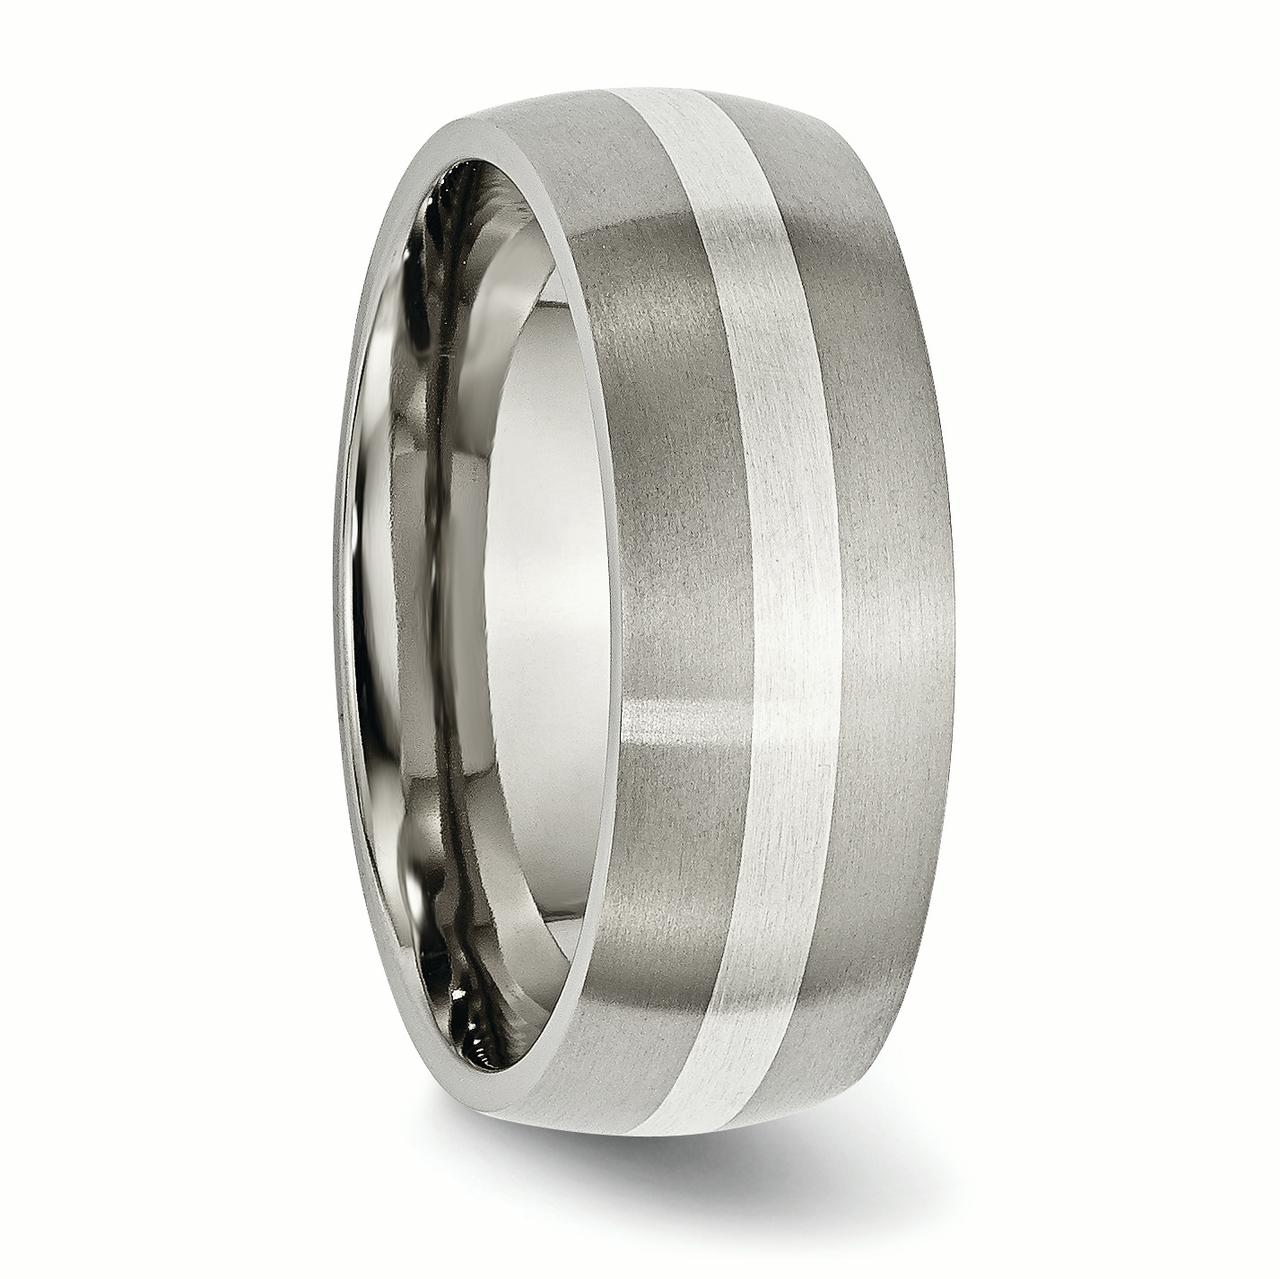 Titanium 925 Sterling Silver Inlay 8mm Brushed Wedding Ring Band Size 10.50 Precious Metal Fine Jewelry Gifts For Women For Her - image 5 de 6